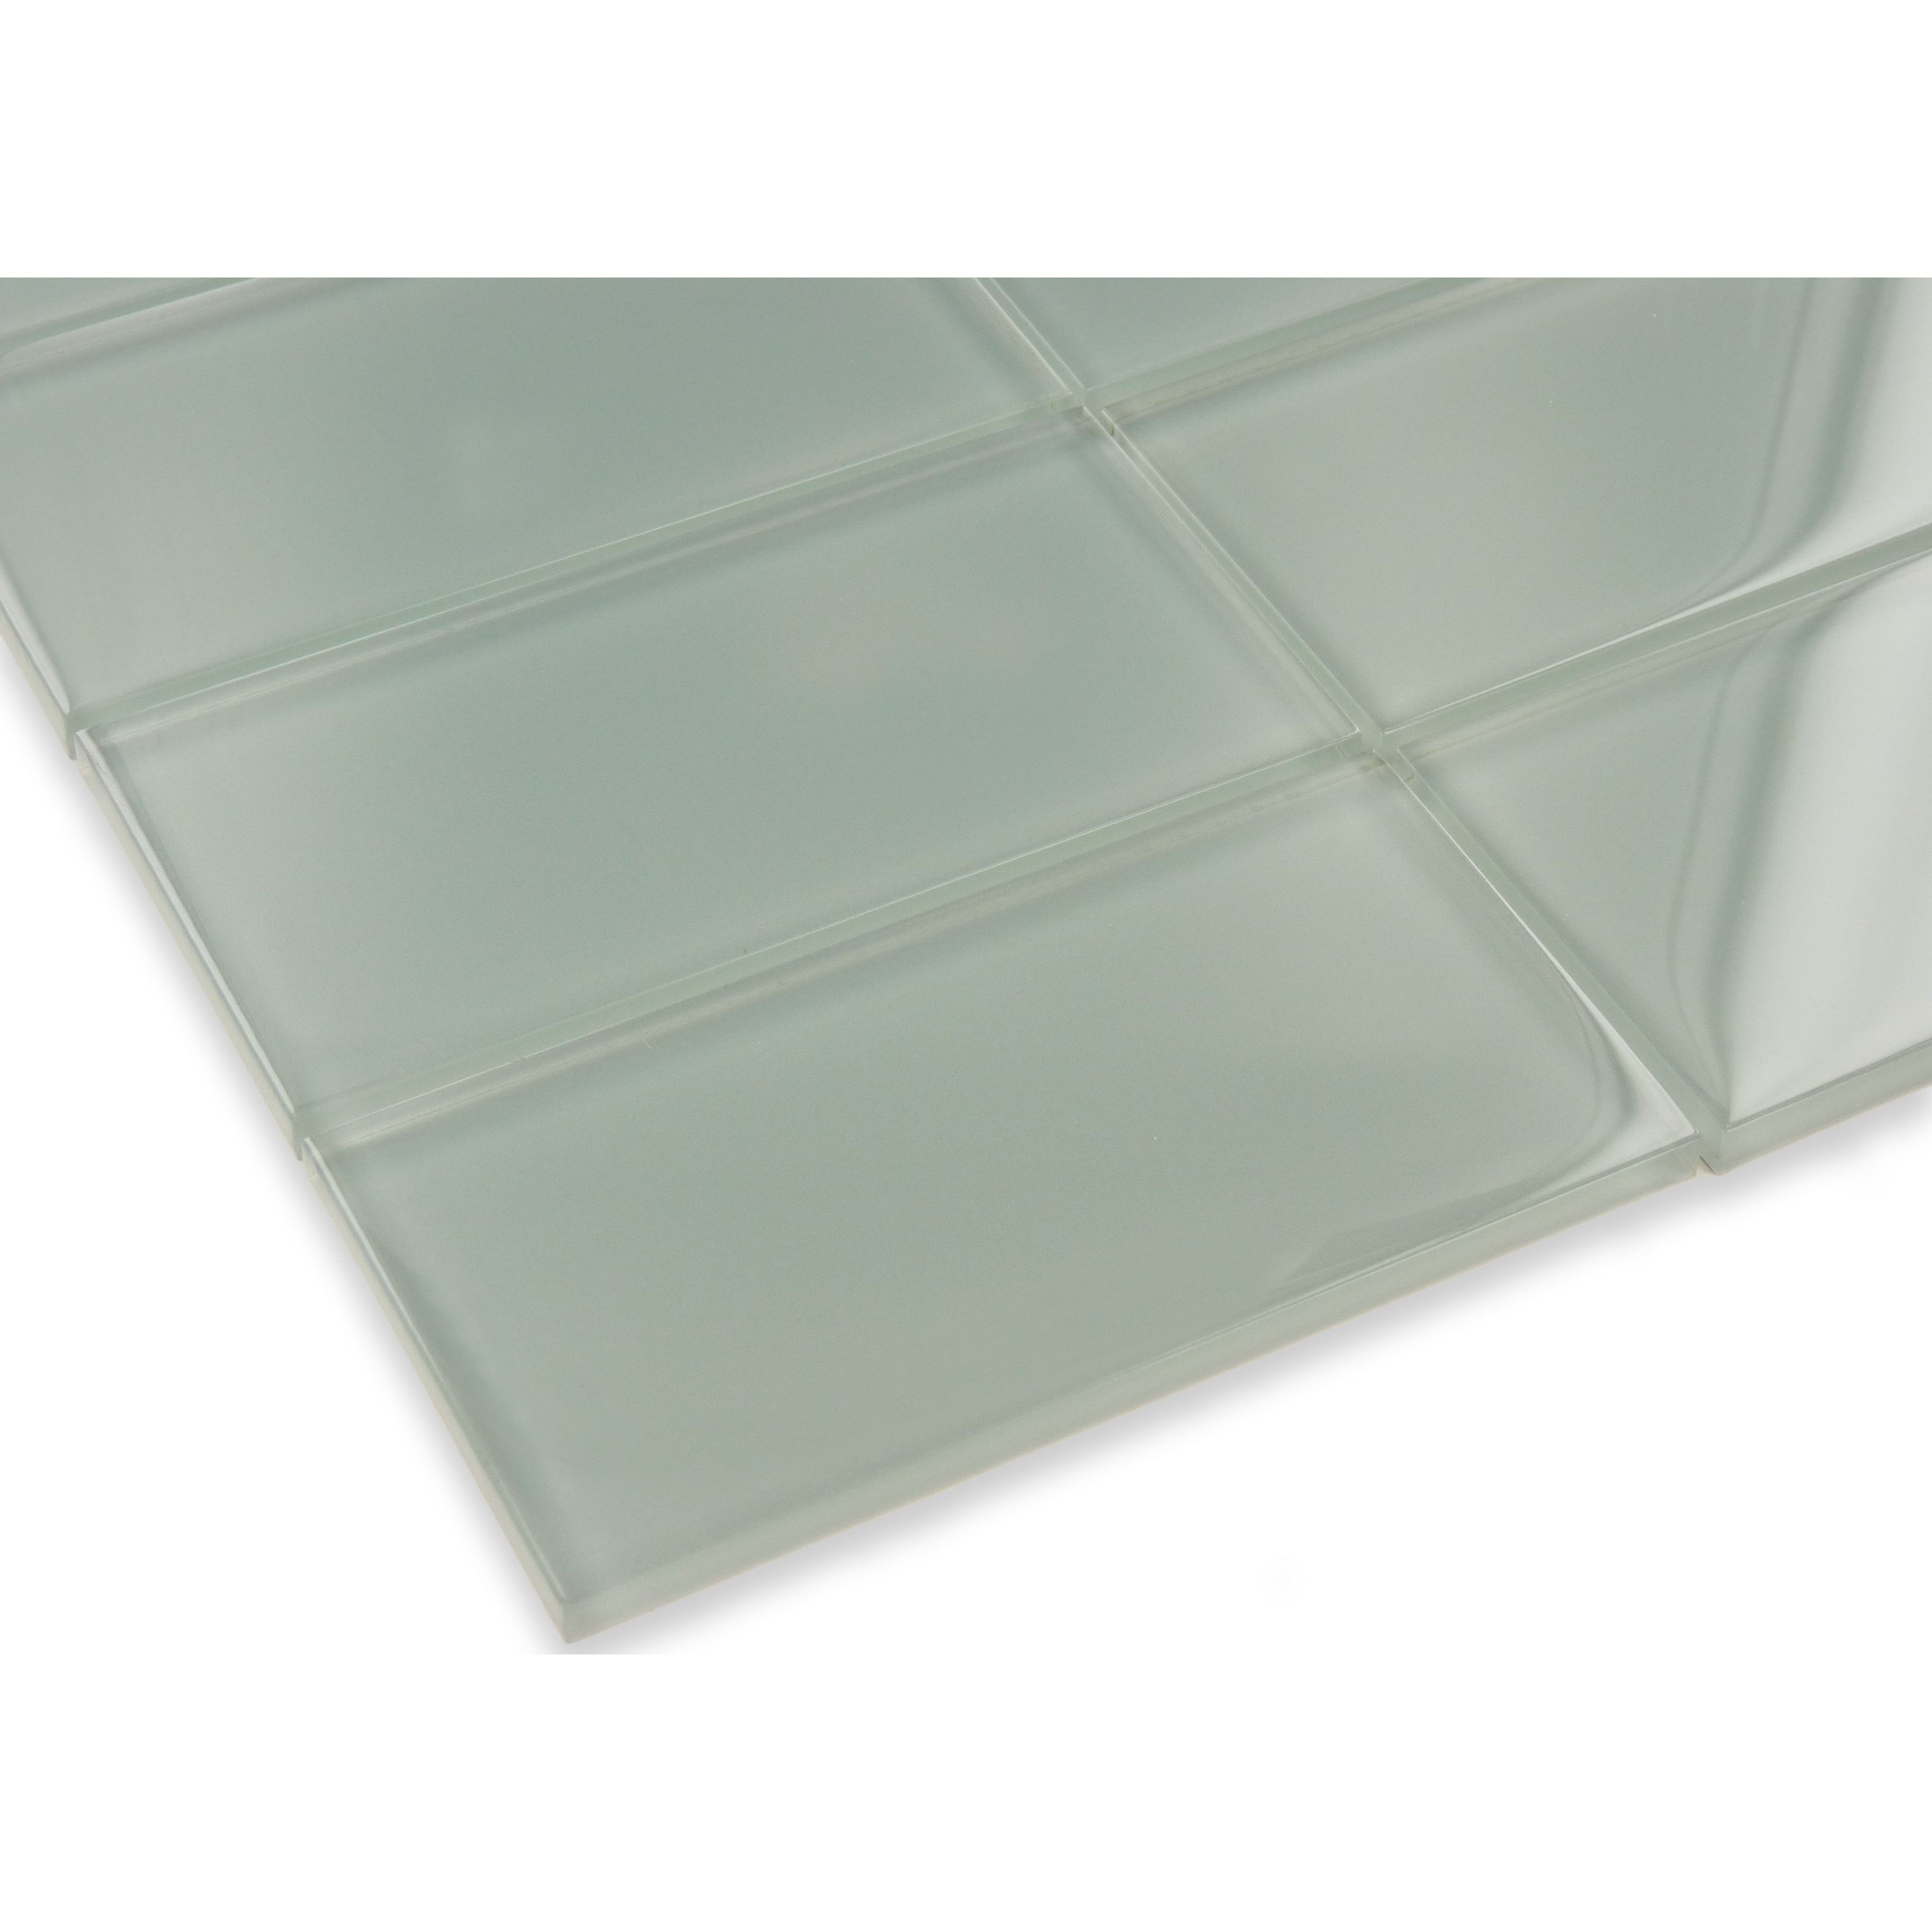 "Sheet size: Approx 1 Sq. Ft.Tile Size: 3"" x 6""Tiles per sheet: 8Tile thickness: 1/4"" Grout joints:1/8"" Sold by the sheet"